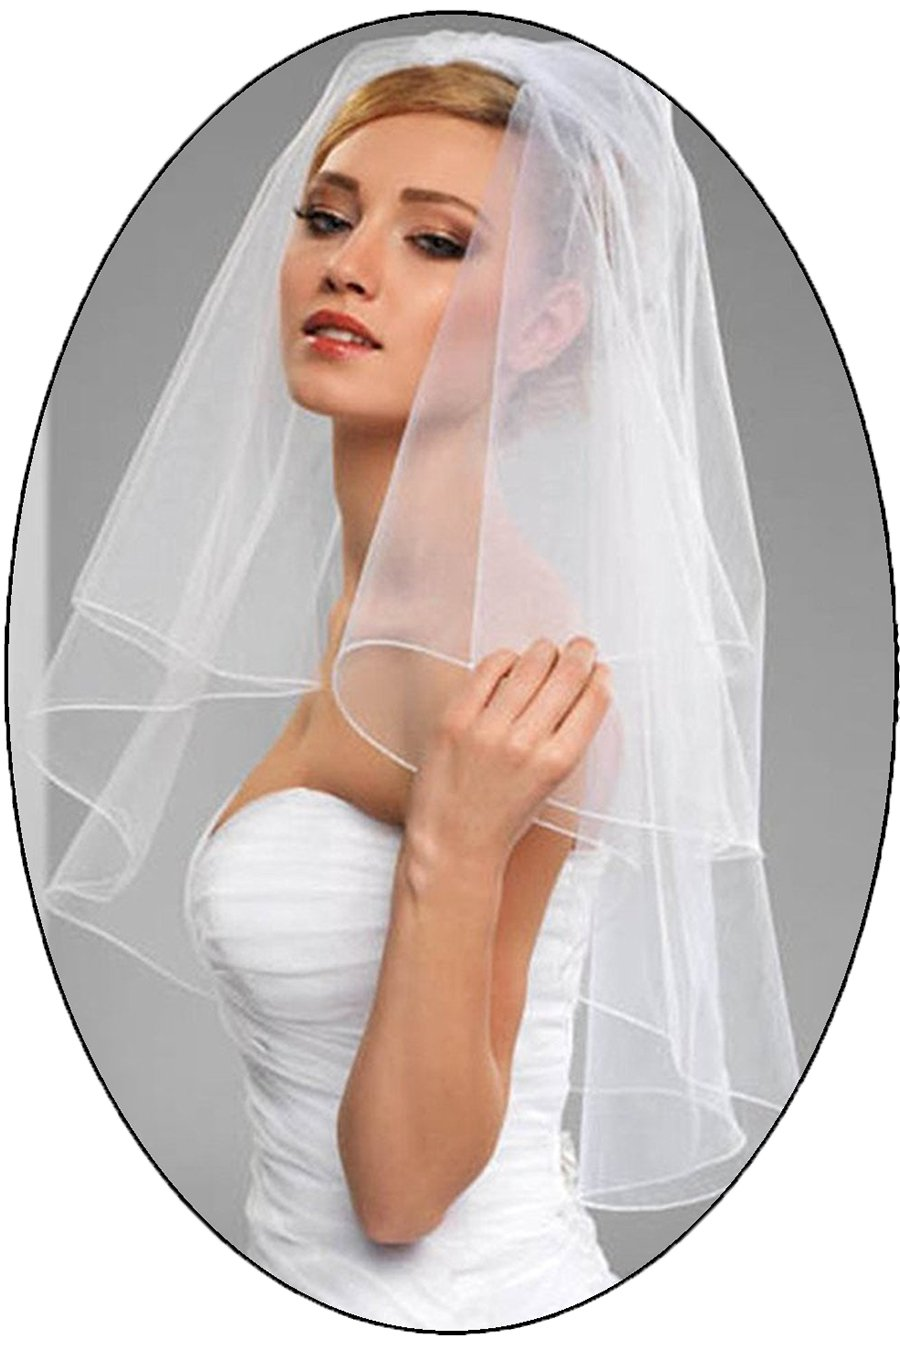 HIDRESS 1T 1 Tier 0.8M Veil Chiffon 3.5 Meters Bride Wedding Mop Veil TS00PL 0.8M WN